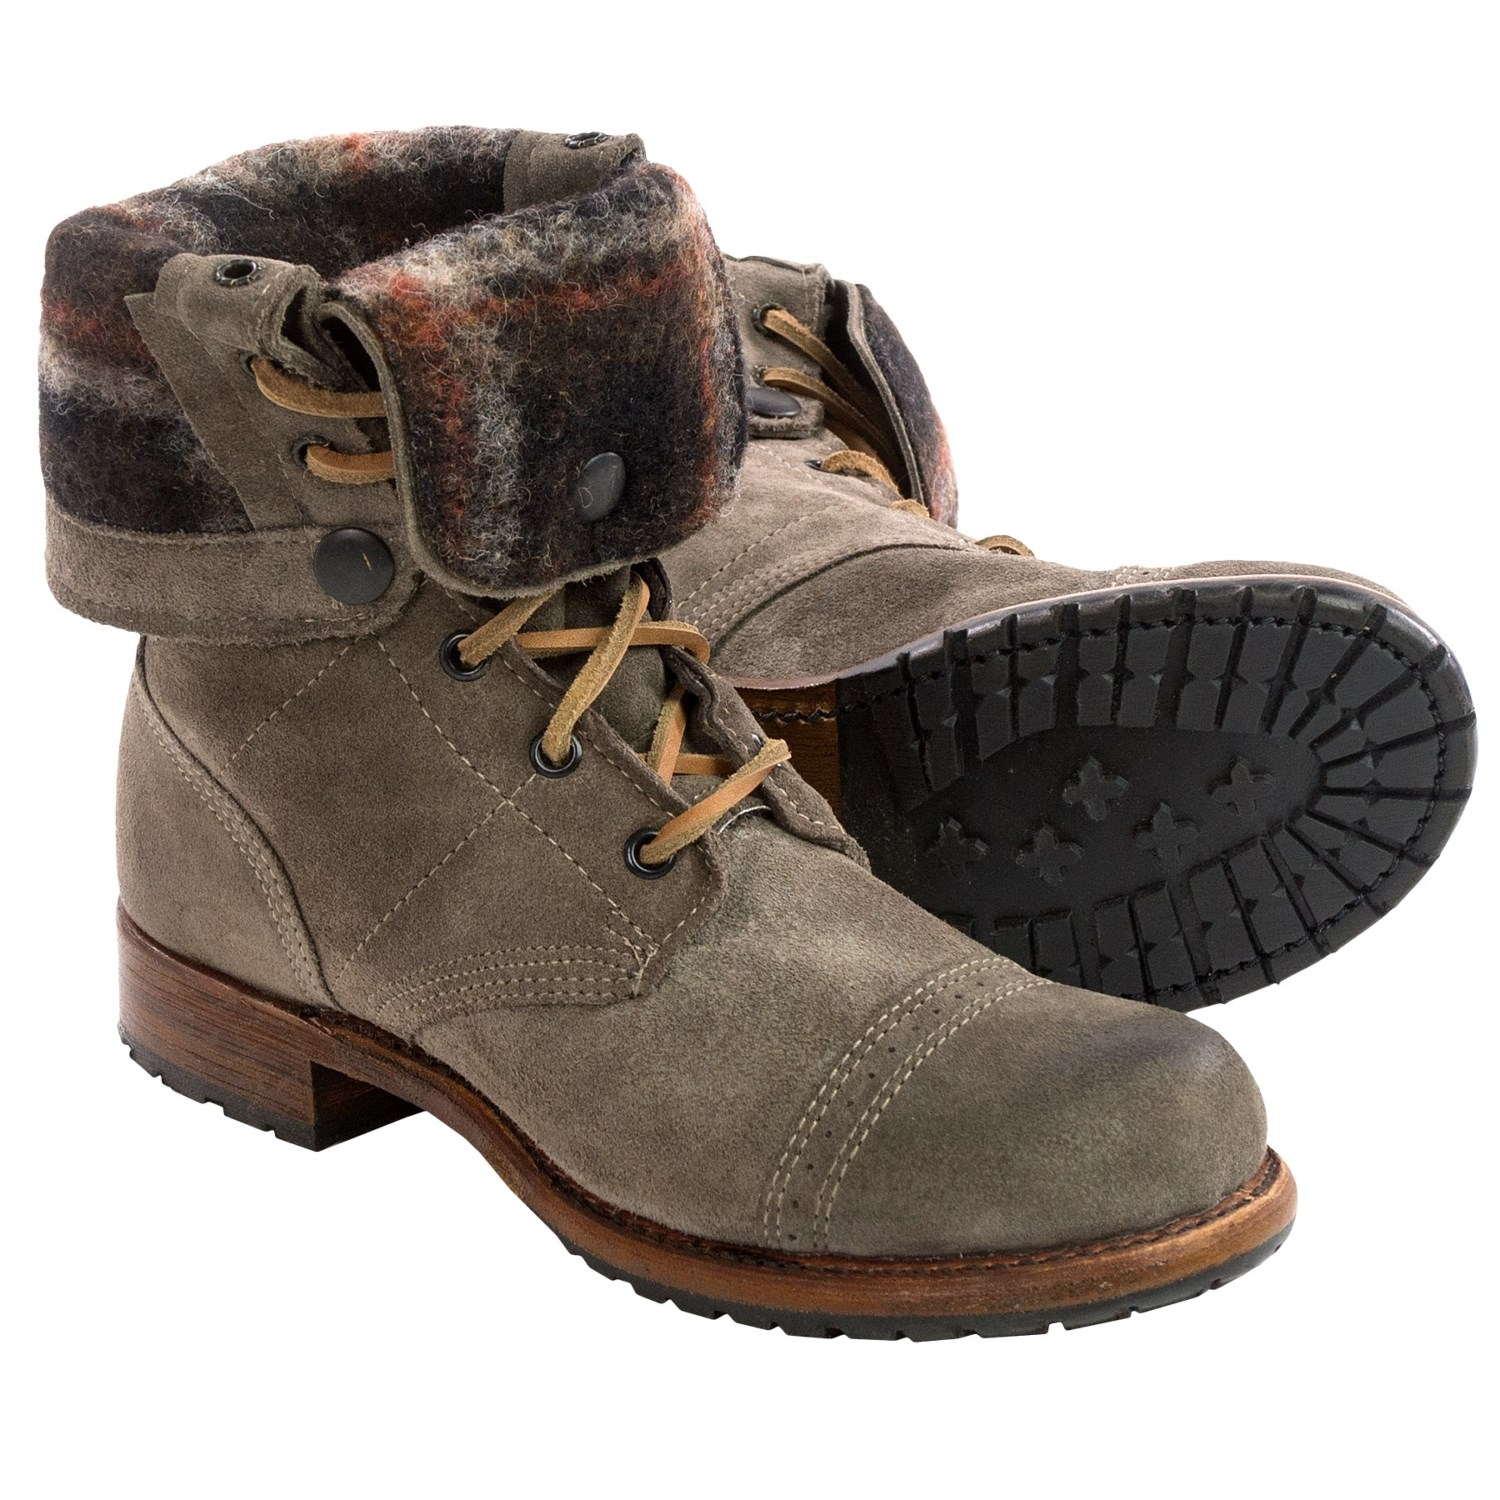 b98520e4232 Vintage Shoe Company Adeline Leather Boots (For Women) 107JF 80 on ...